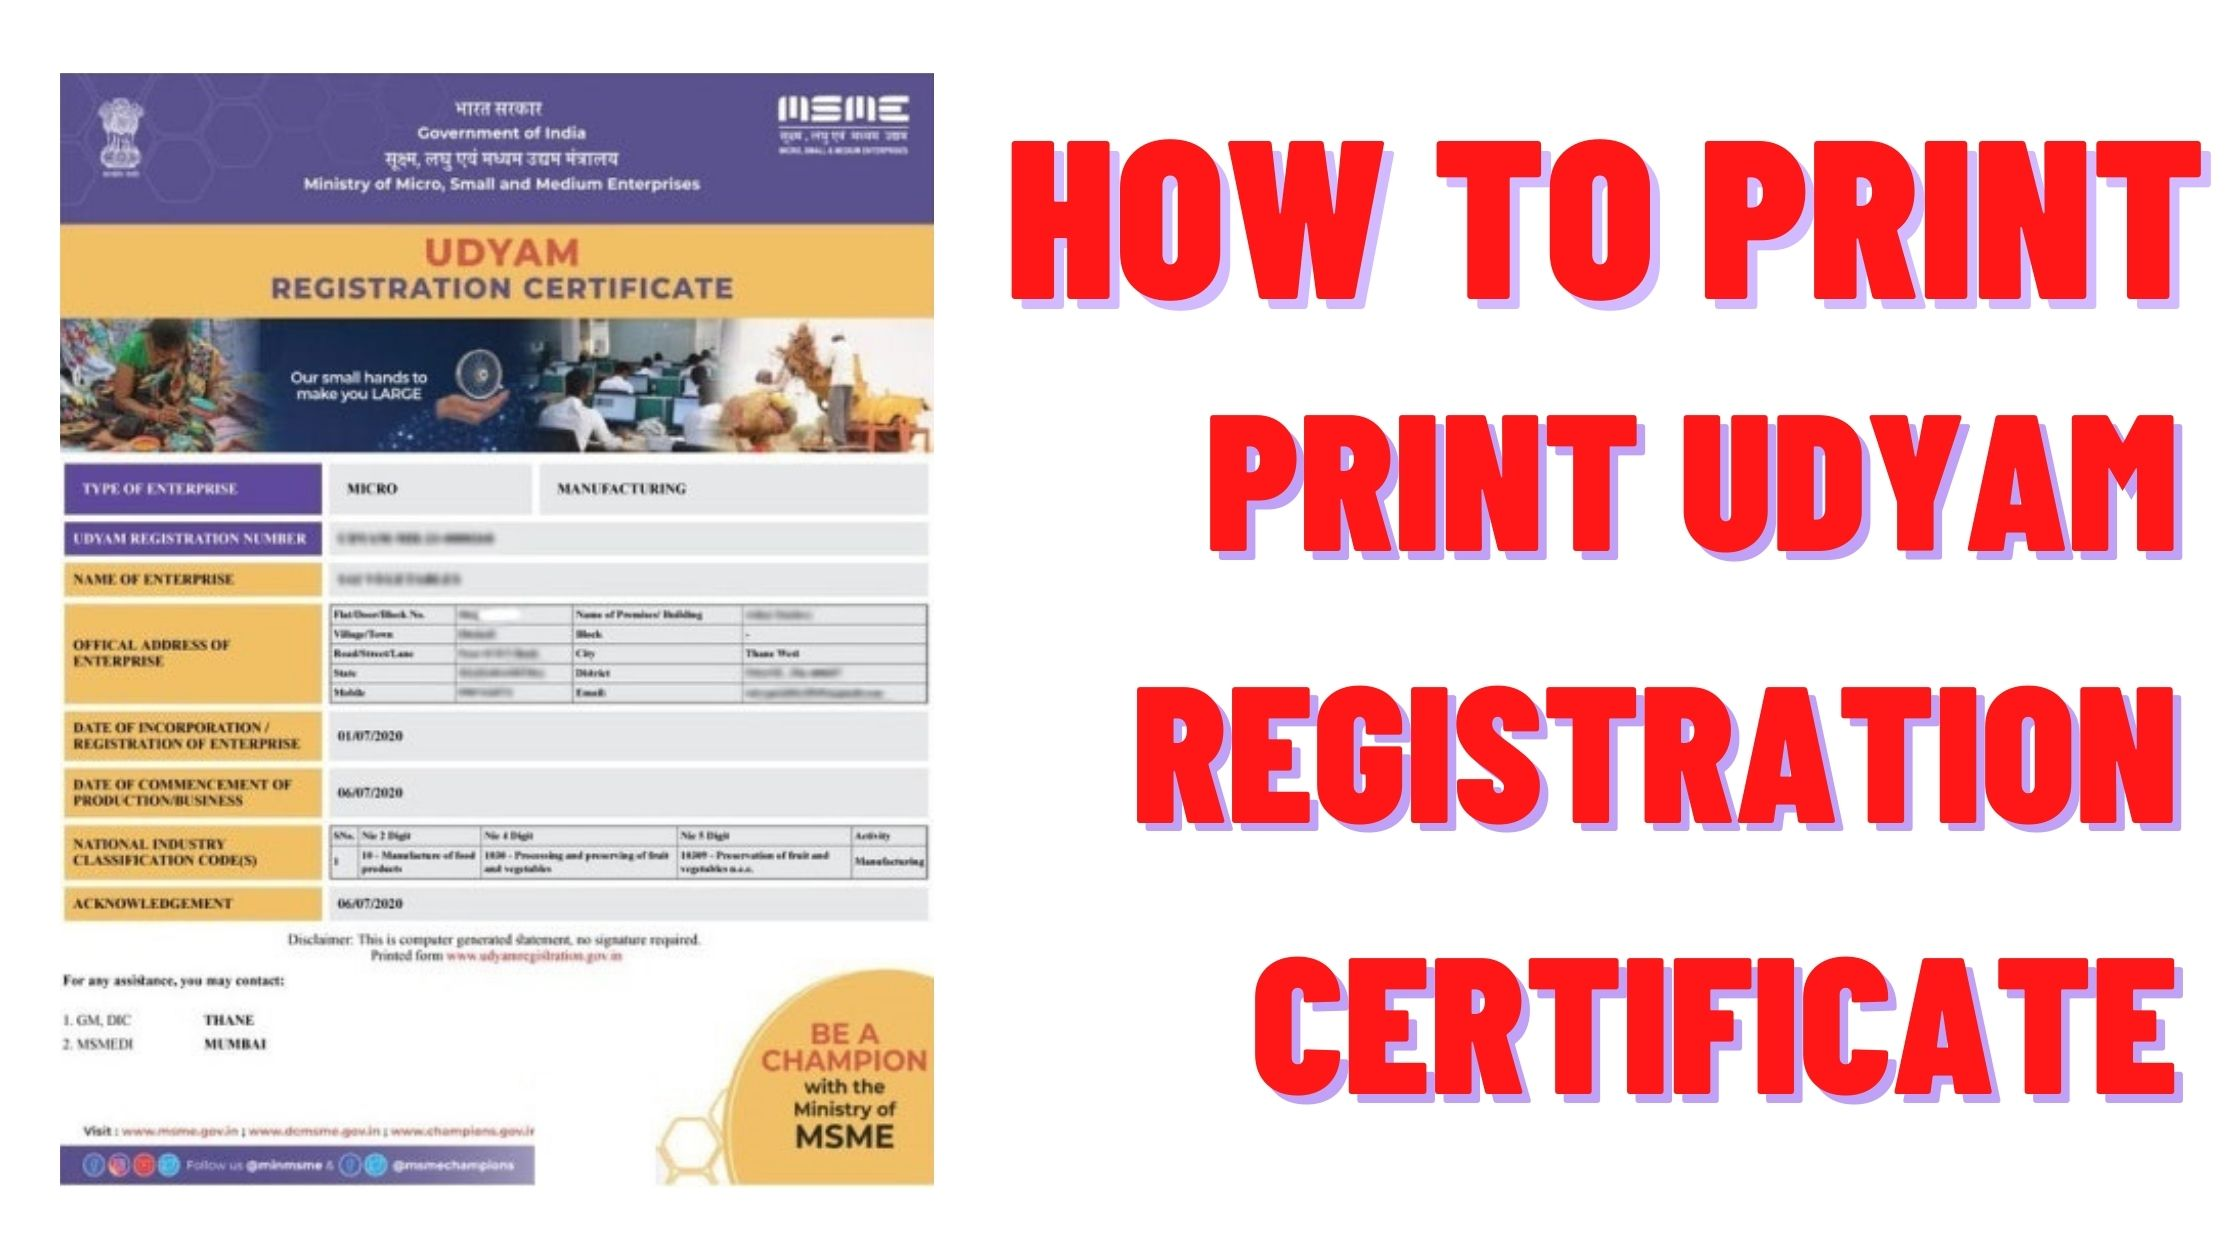 How to Print Udyam Registration Certificate